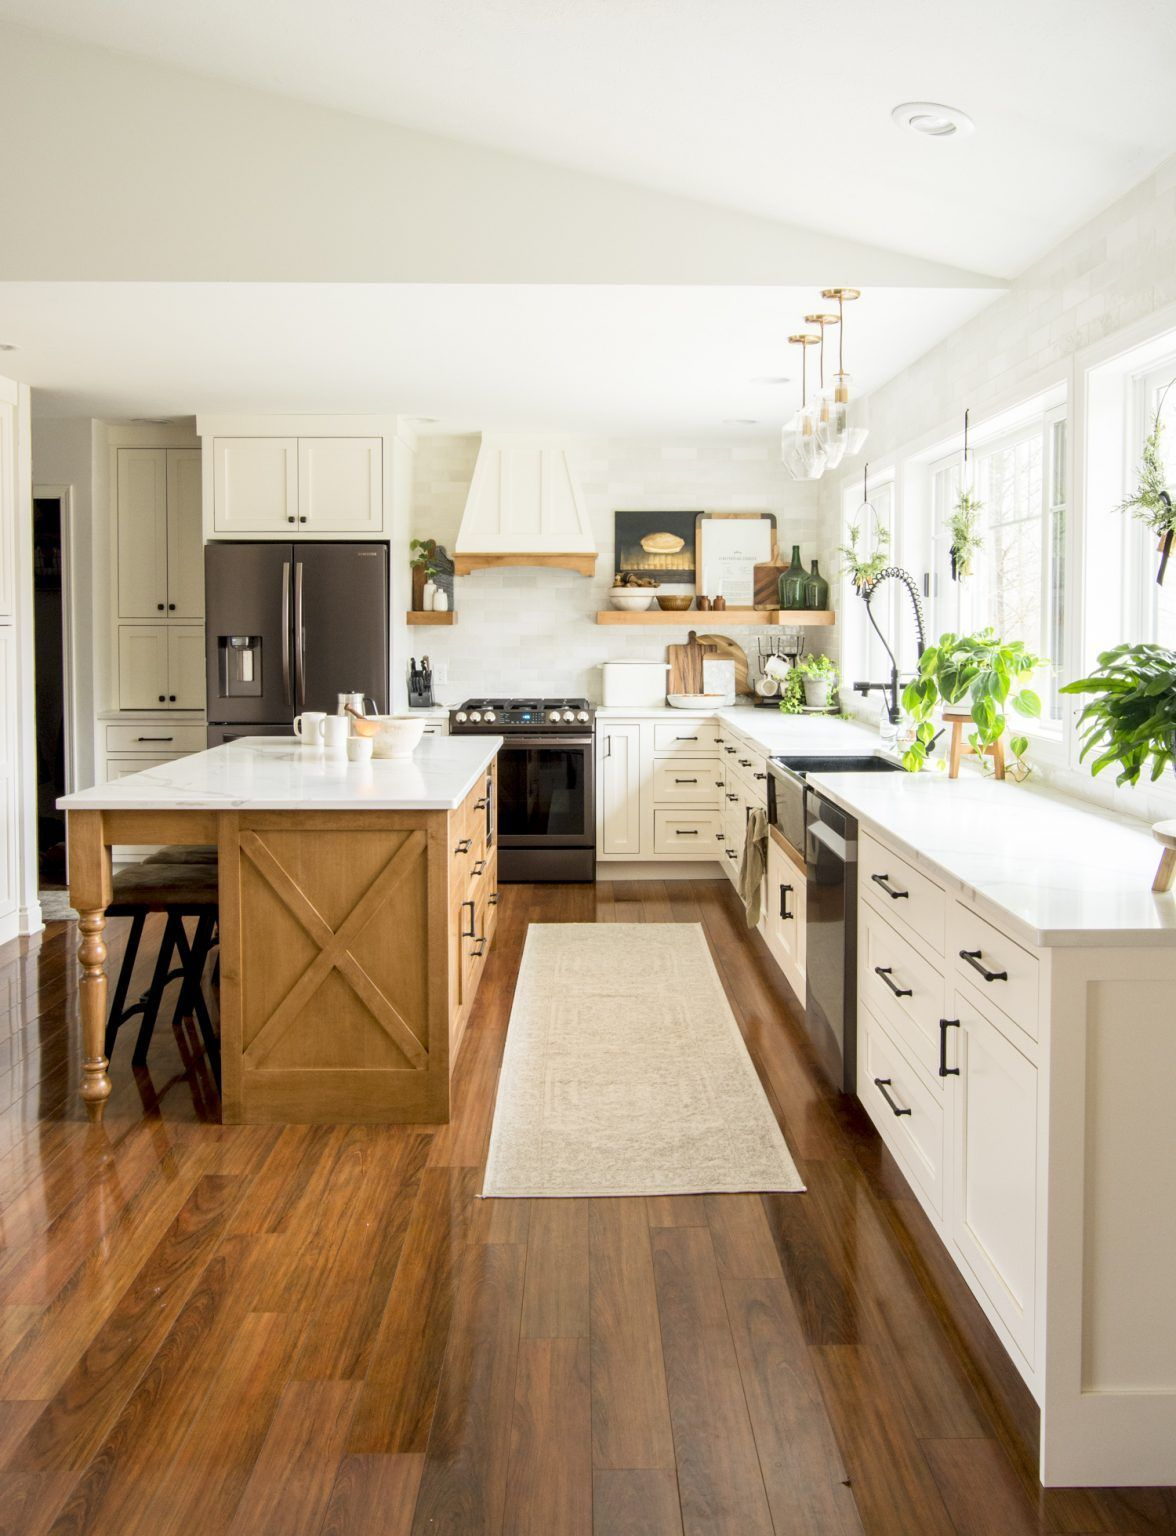 Relaxing Practical Kitchen Design Ideas For Every Solution07